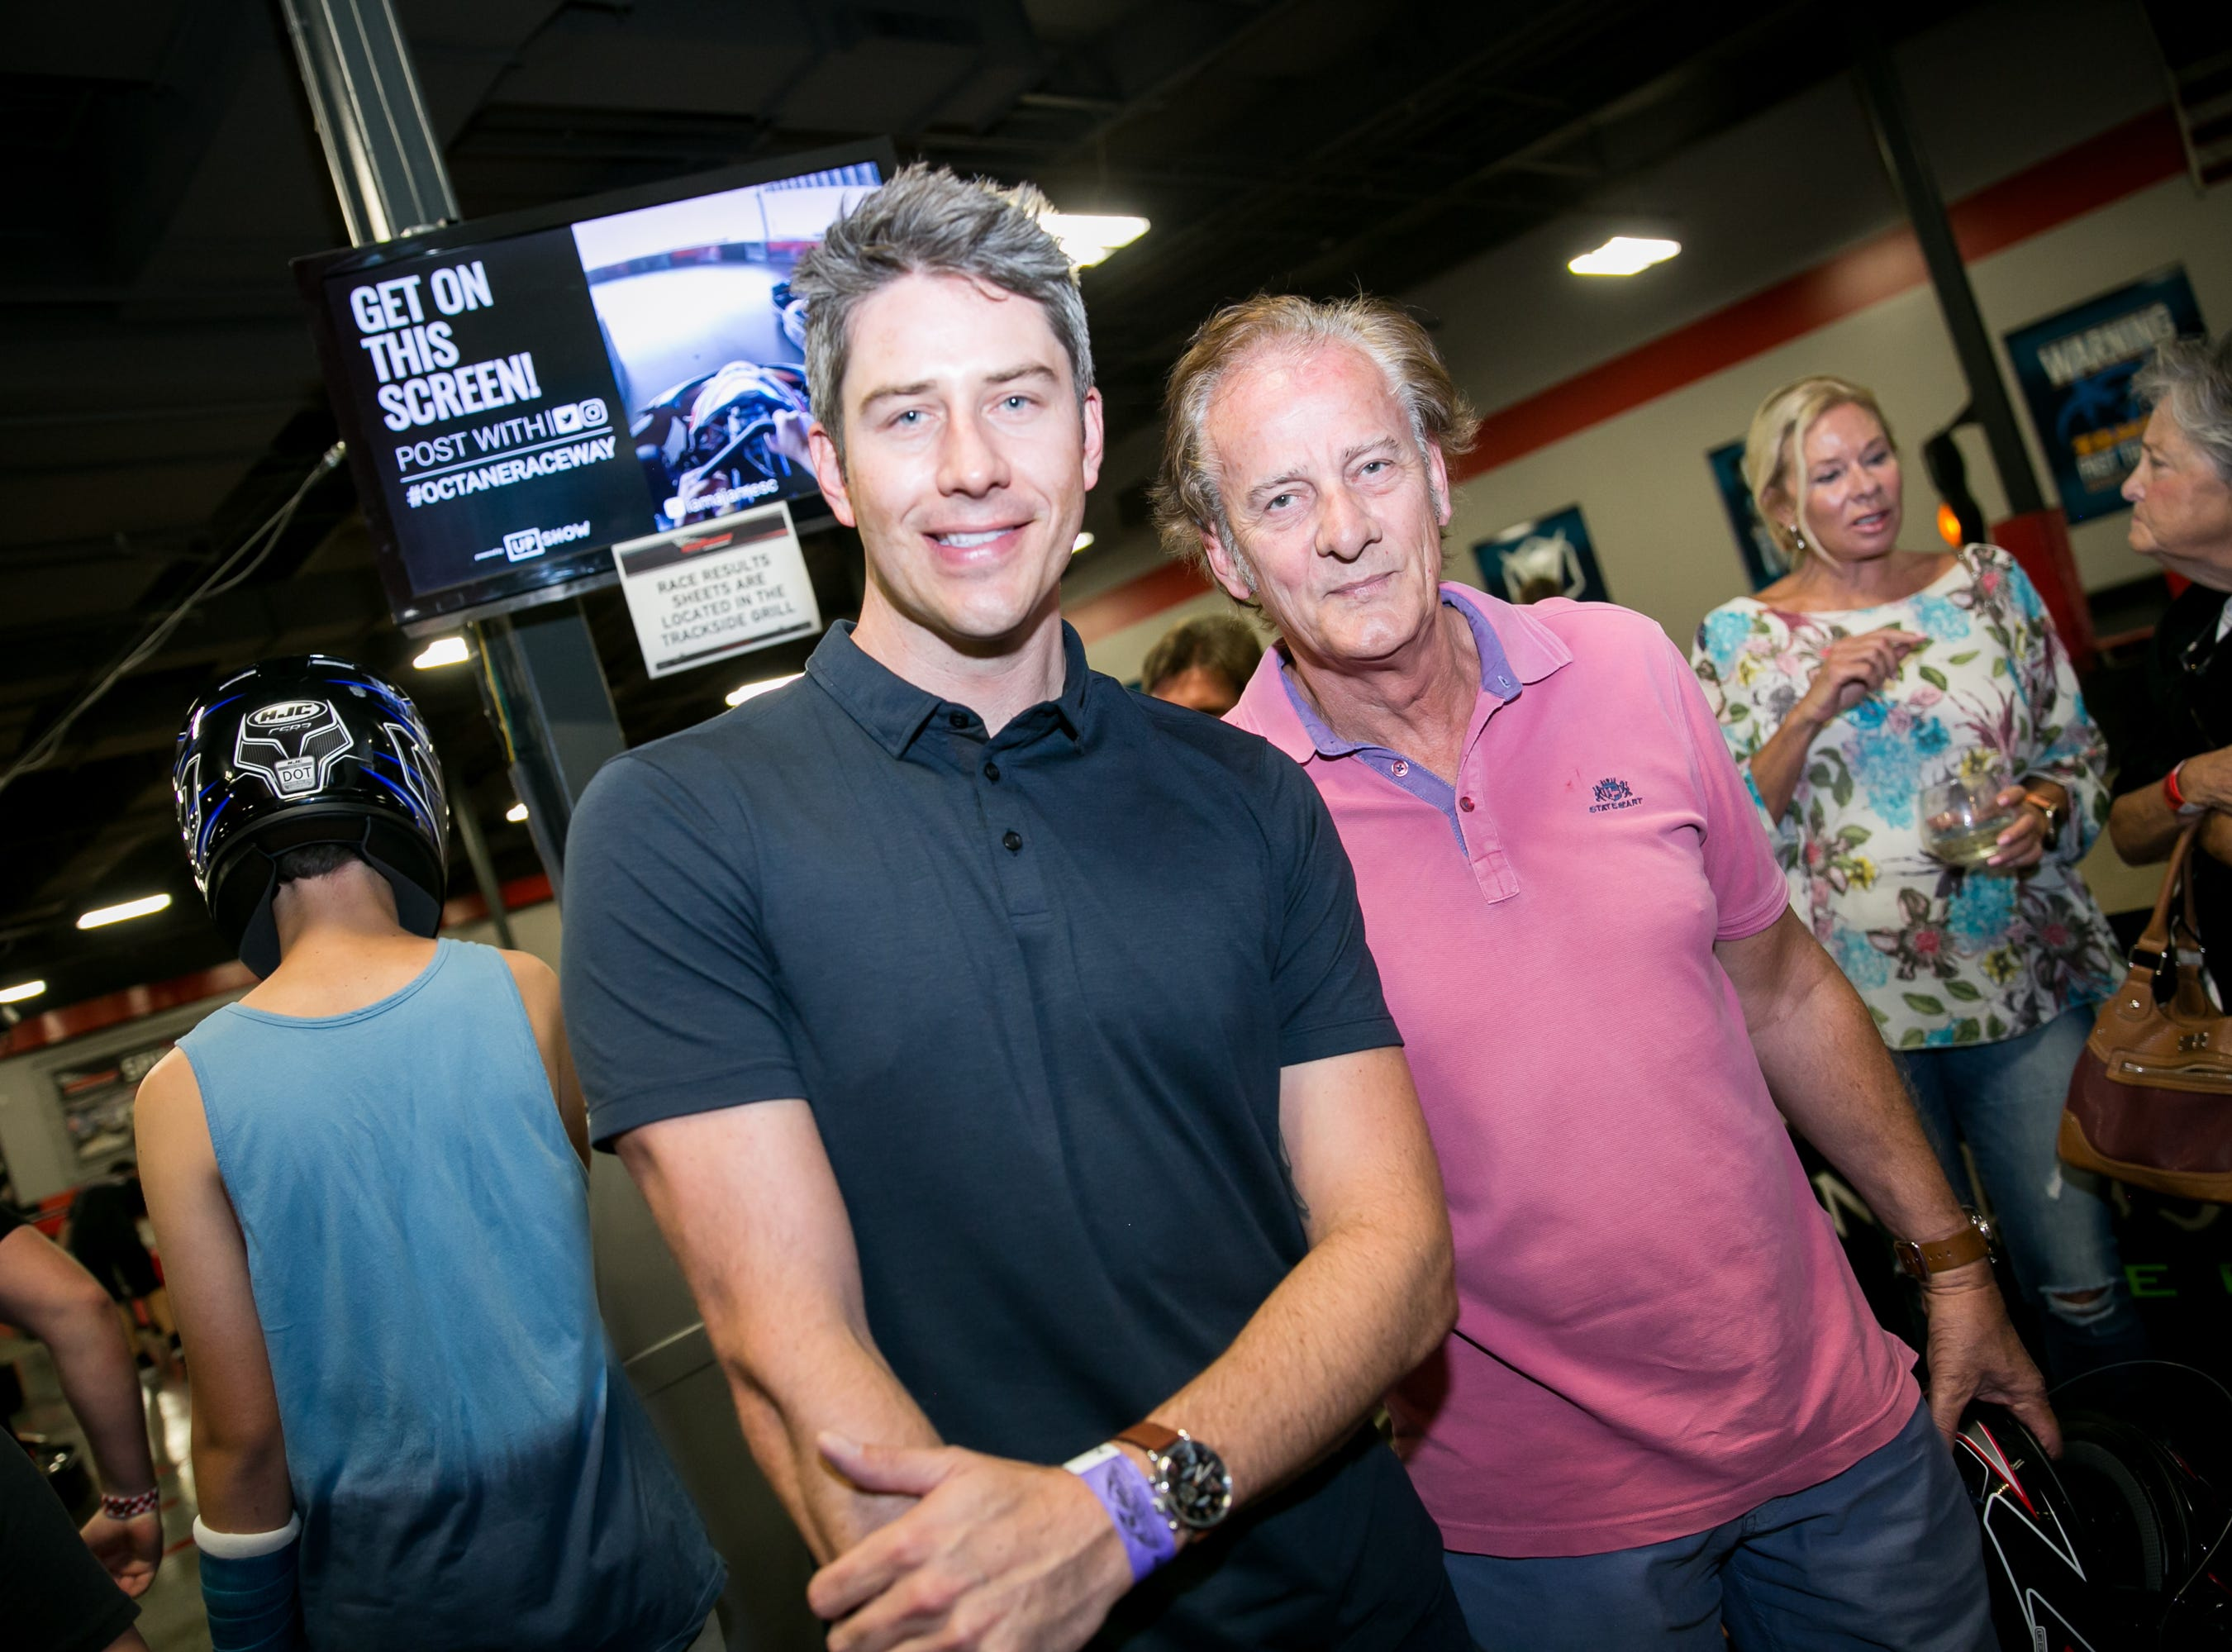 Arie Luyendyk Jr. poses with his dad during Octane Raceway's 15th Anniversary Party in Scottsdale on Saturday, October 6, 2018.